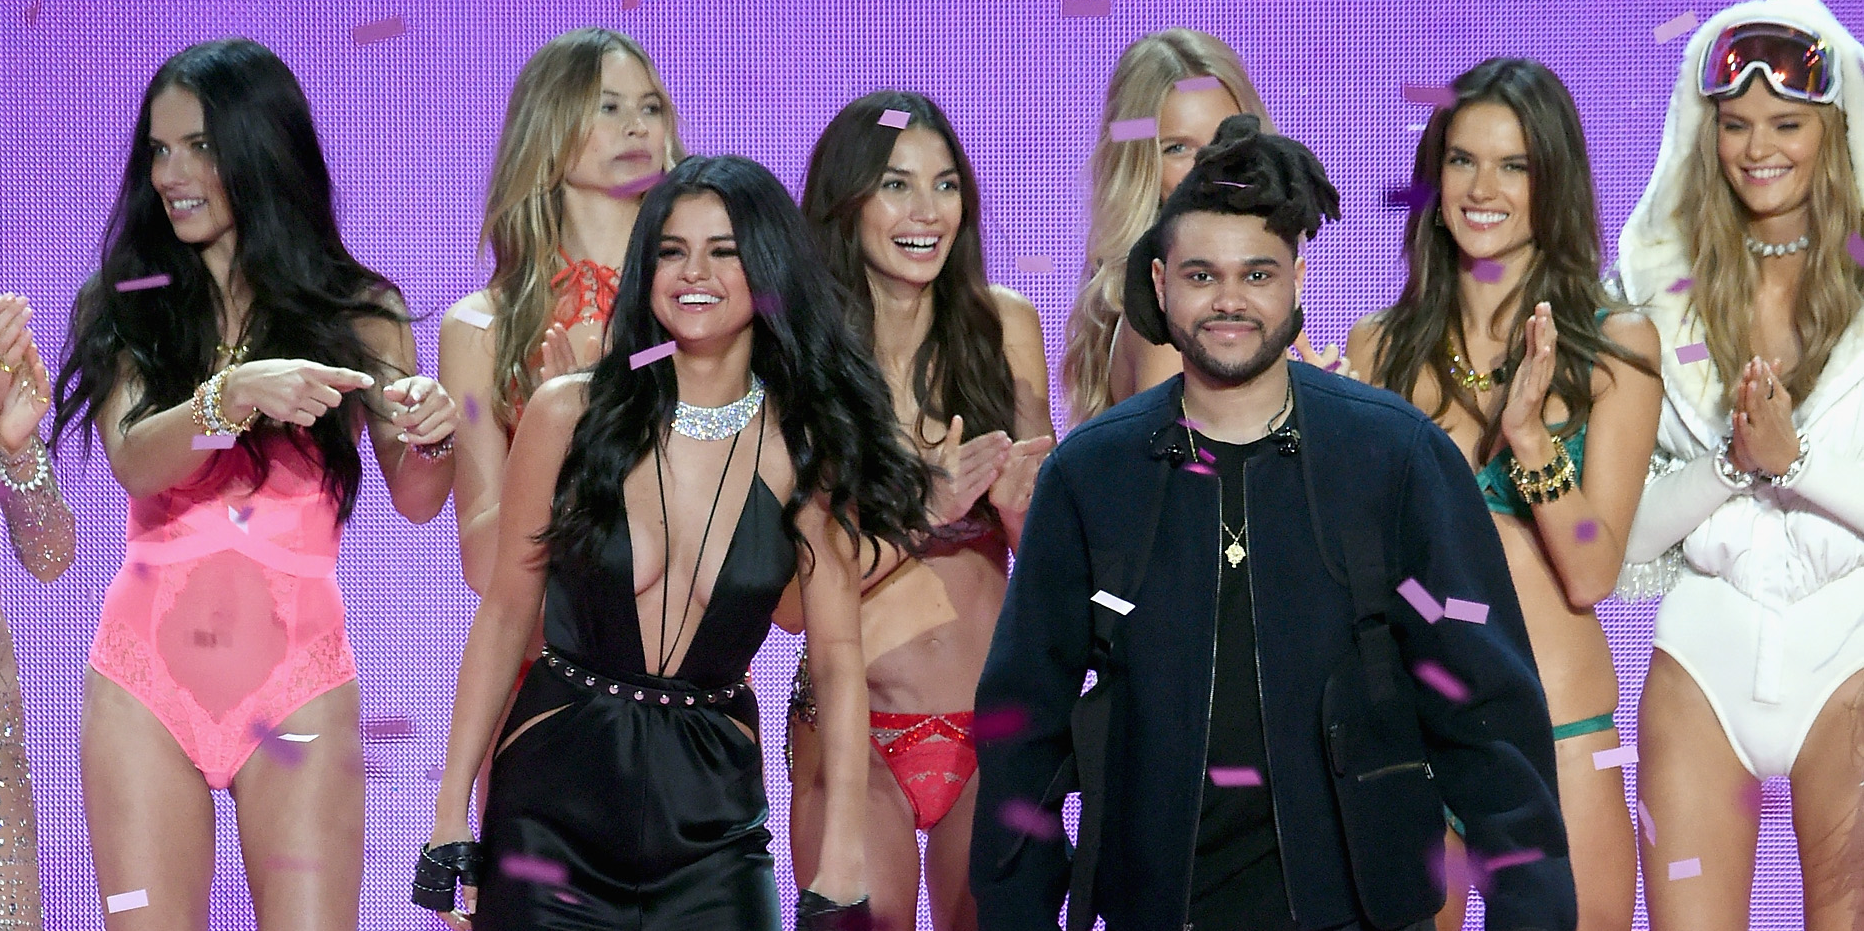 Burn! Selena Gomez and The Weeknd Stopped Following Bella Hadid on Instagram